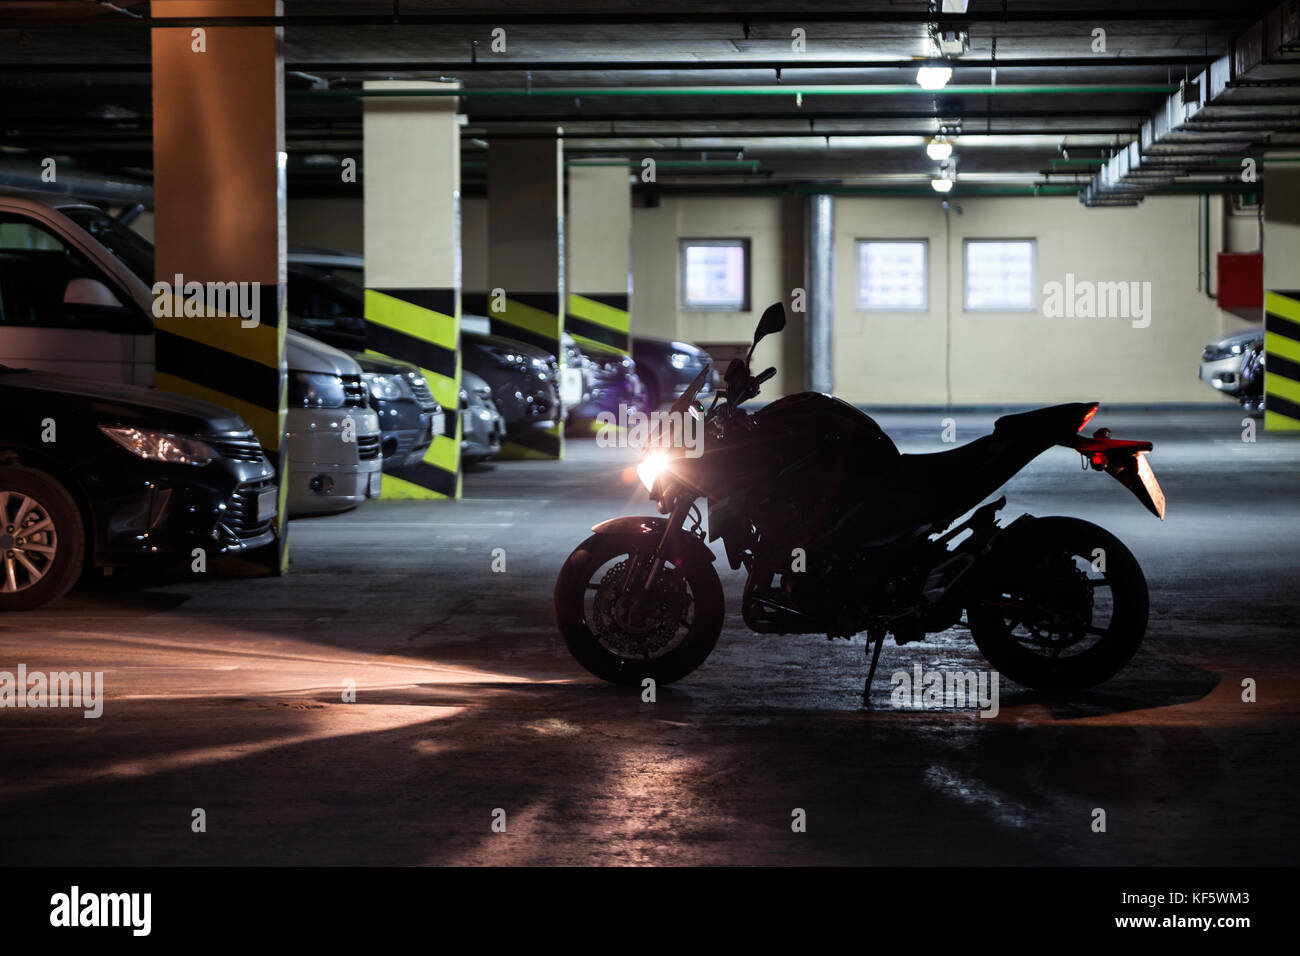 Silhouette of motorcycle standing with running engine in front of parked vehicles in underground parking - Stock Image